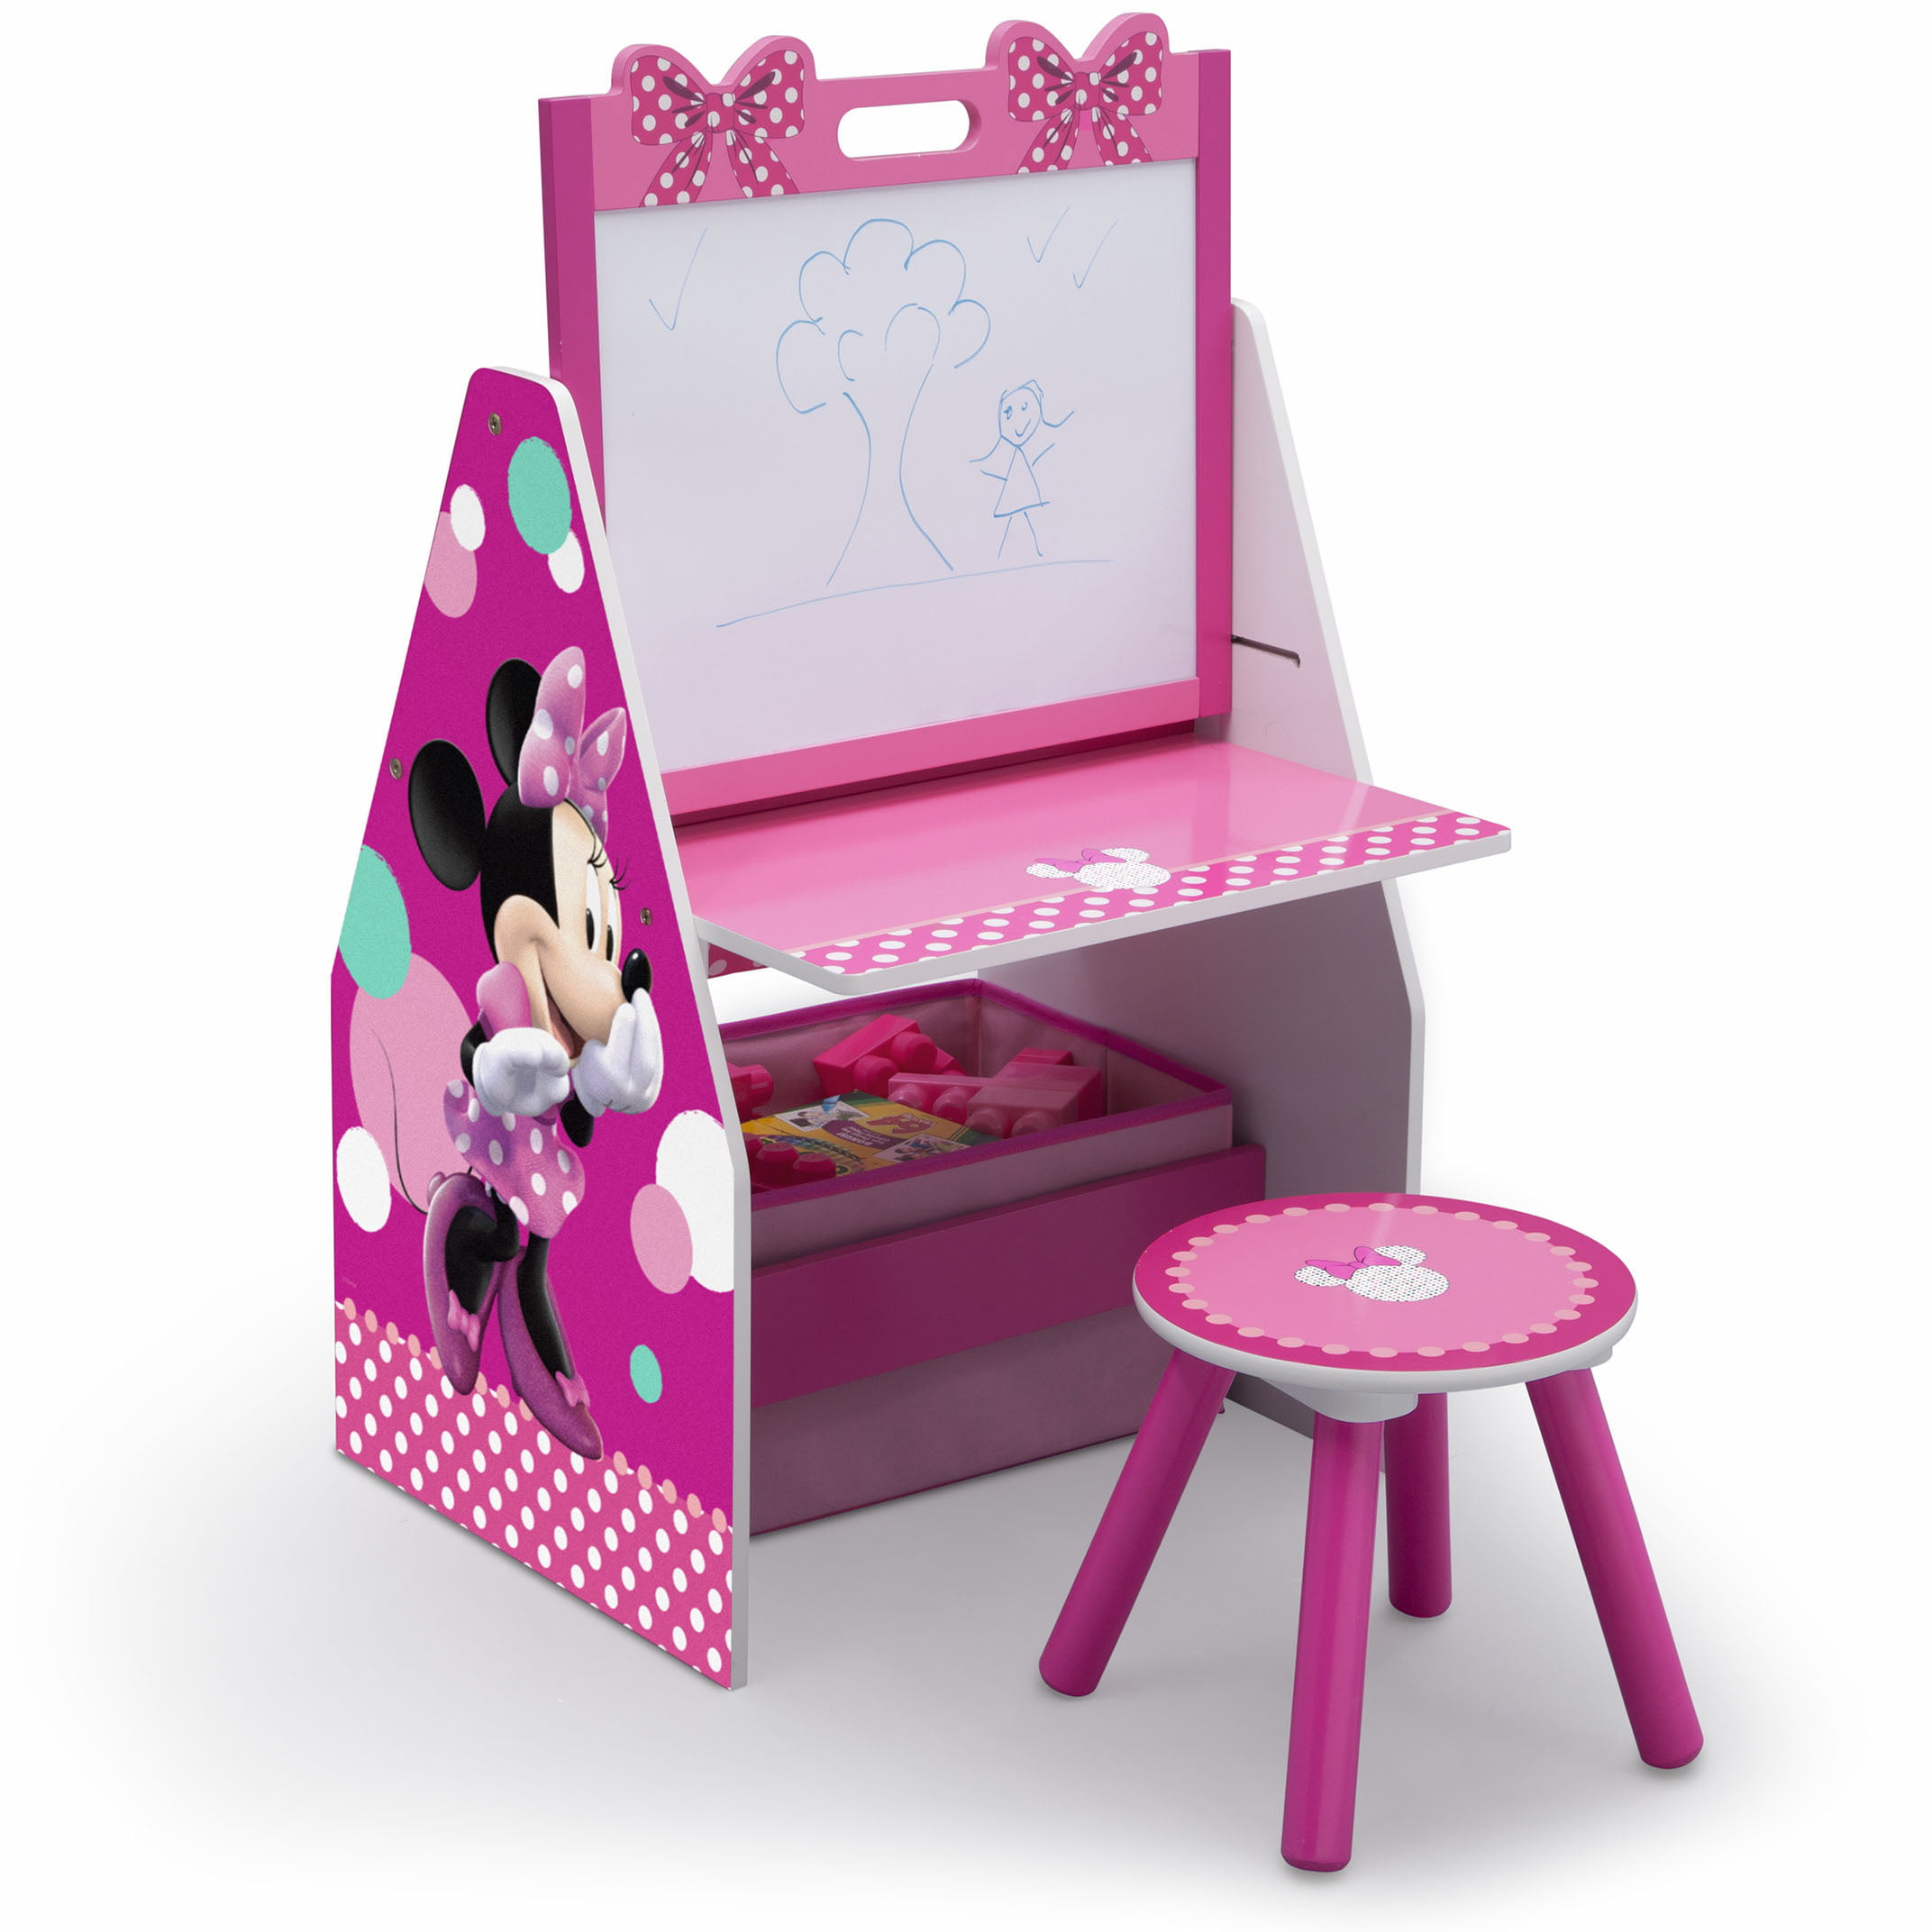 Disney Minnie Mouse Deluxe Kids Art Table, Easel, Desk, Stool & Toy Organizer by Delta Children by Delta Children